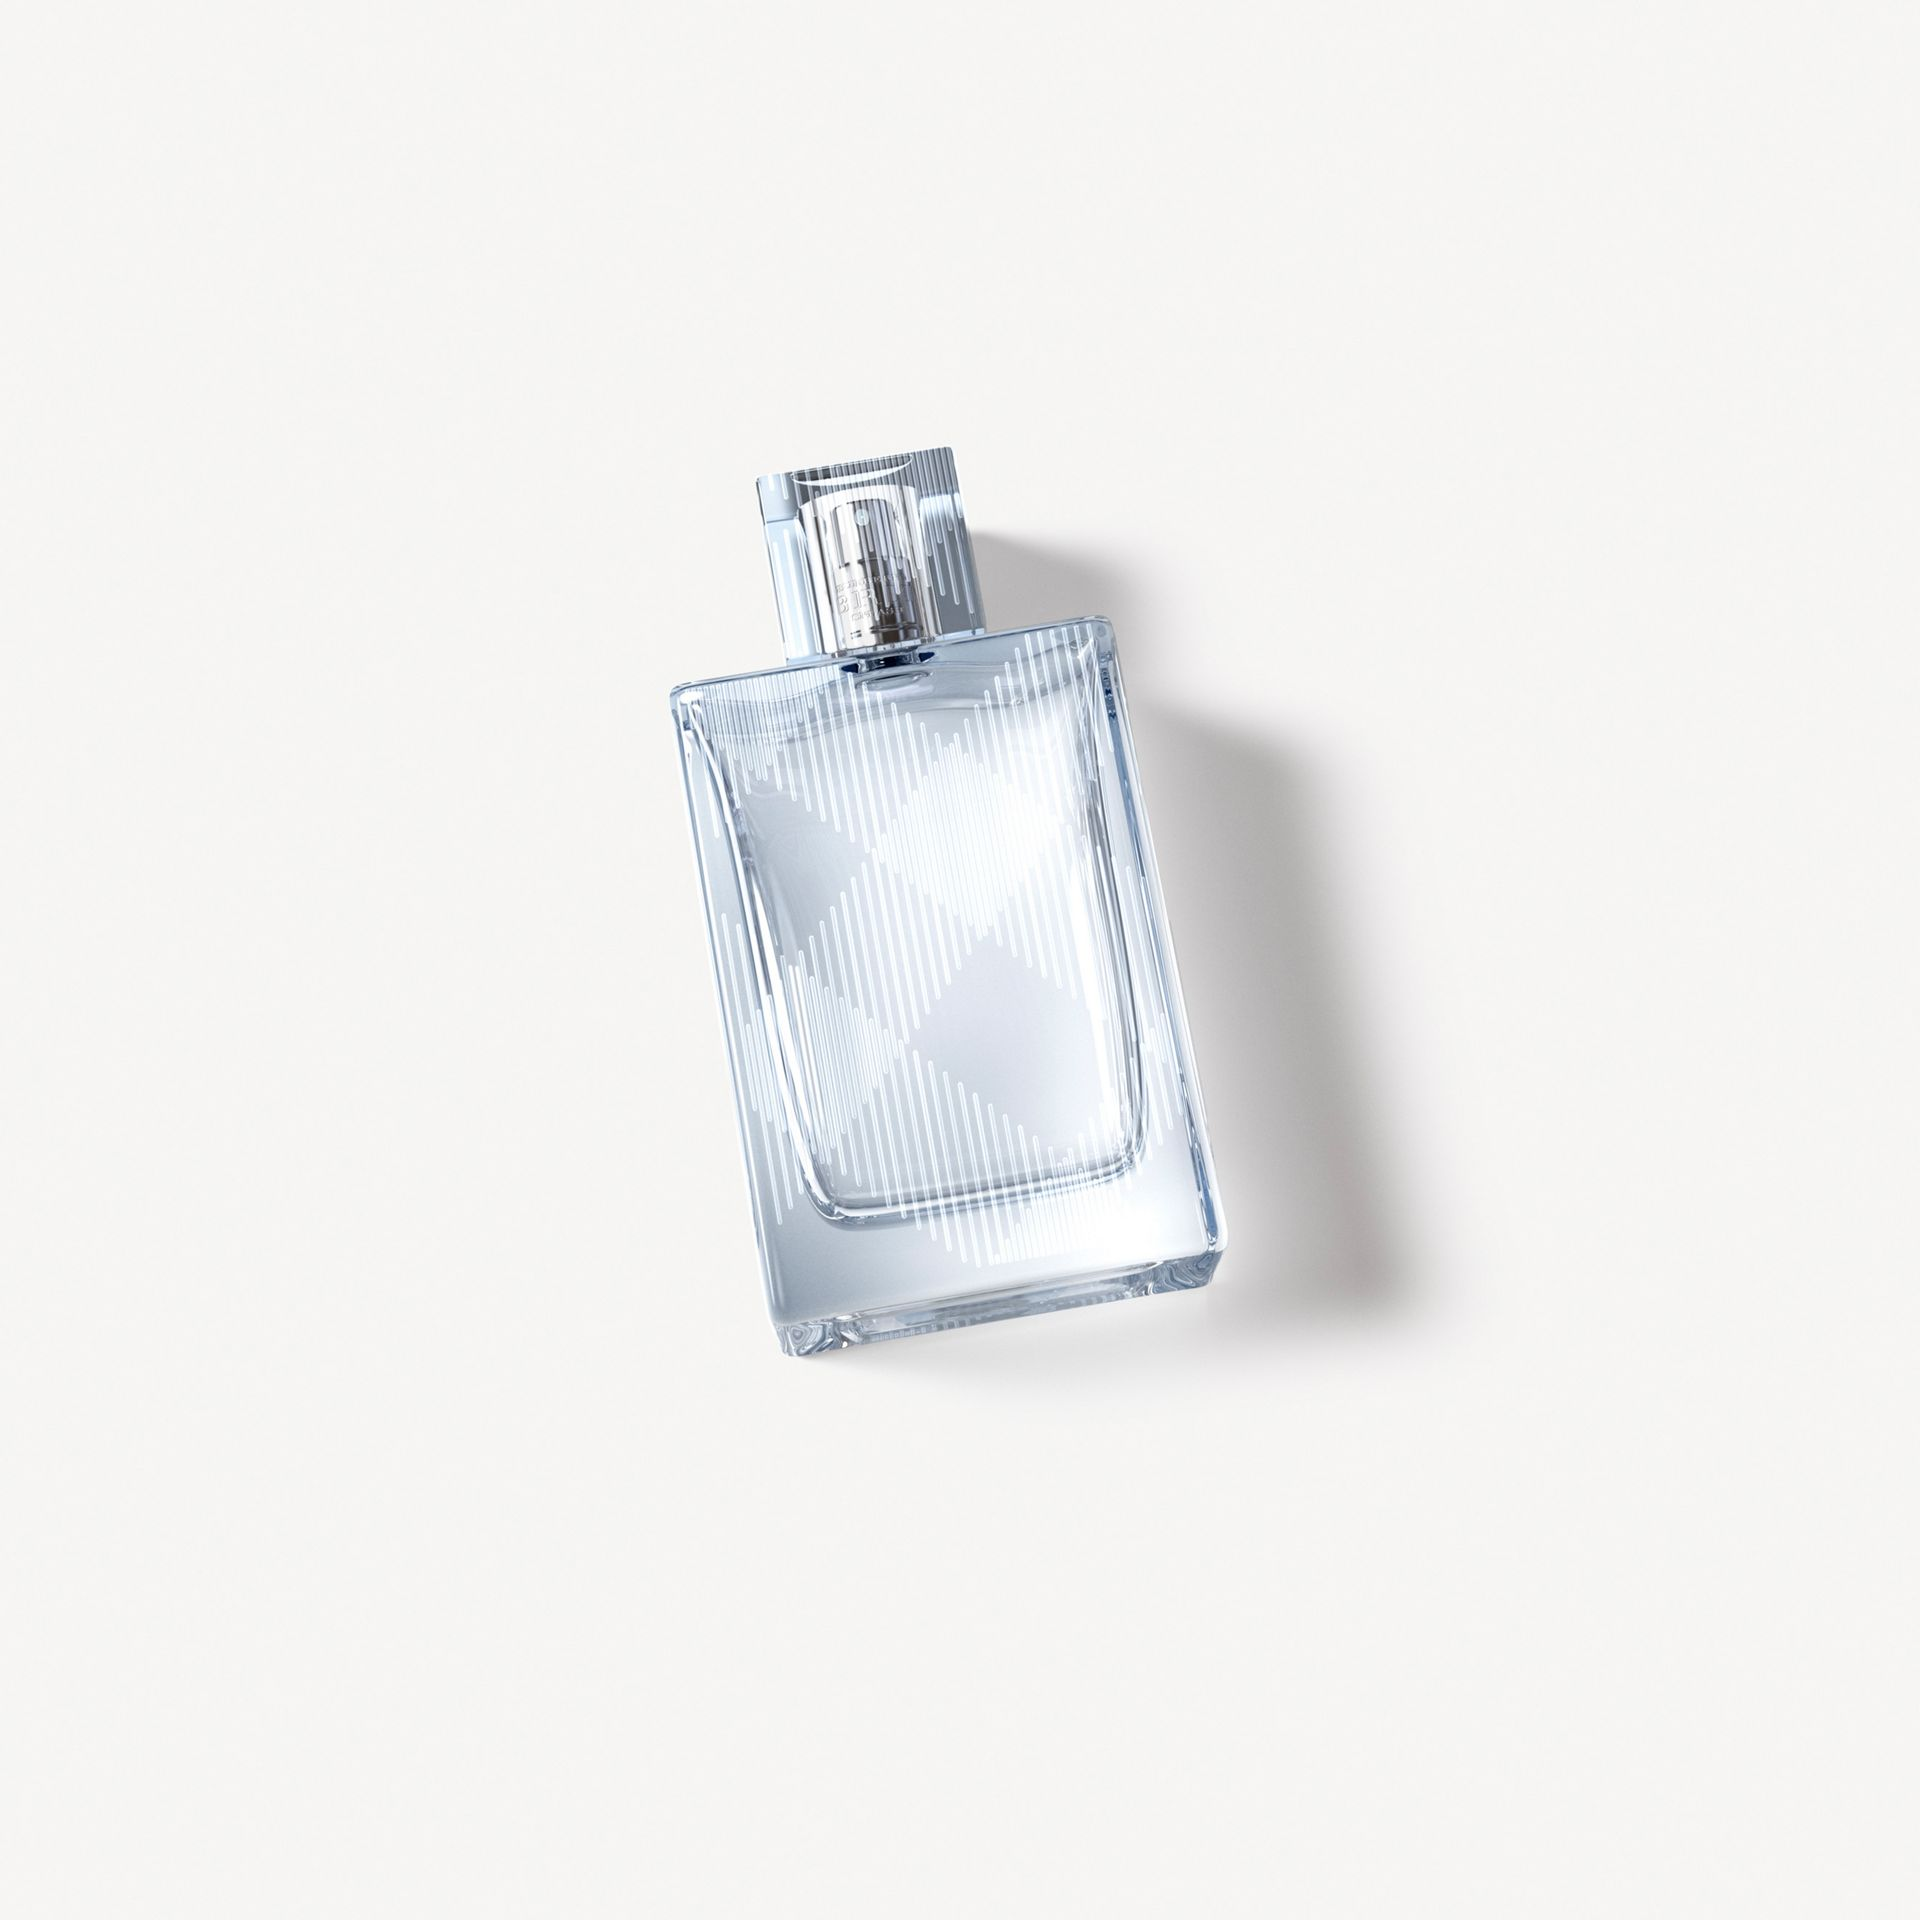 Burberry Brit Splash Eau de Toilette 50 ml - Galerie-Bild 1